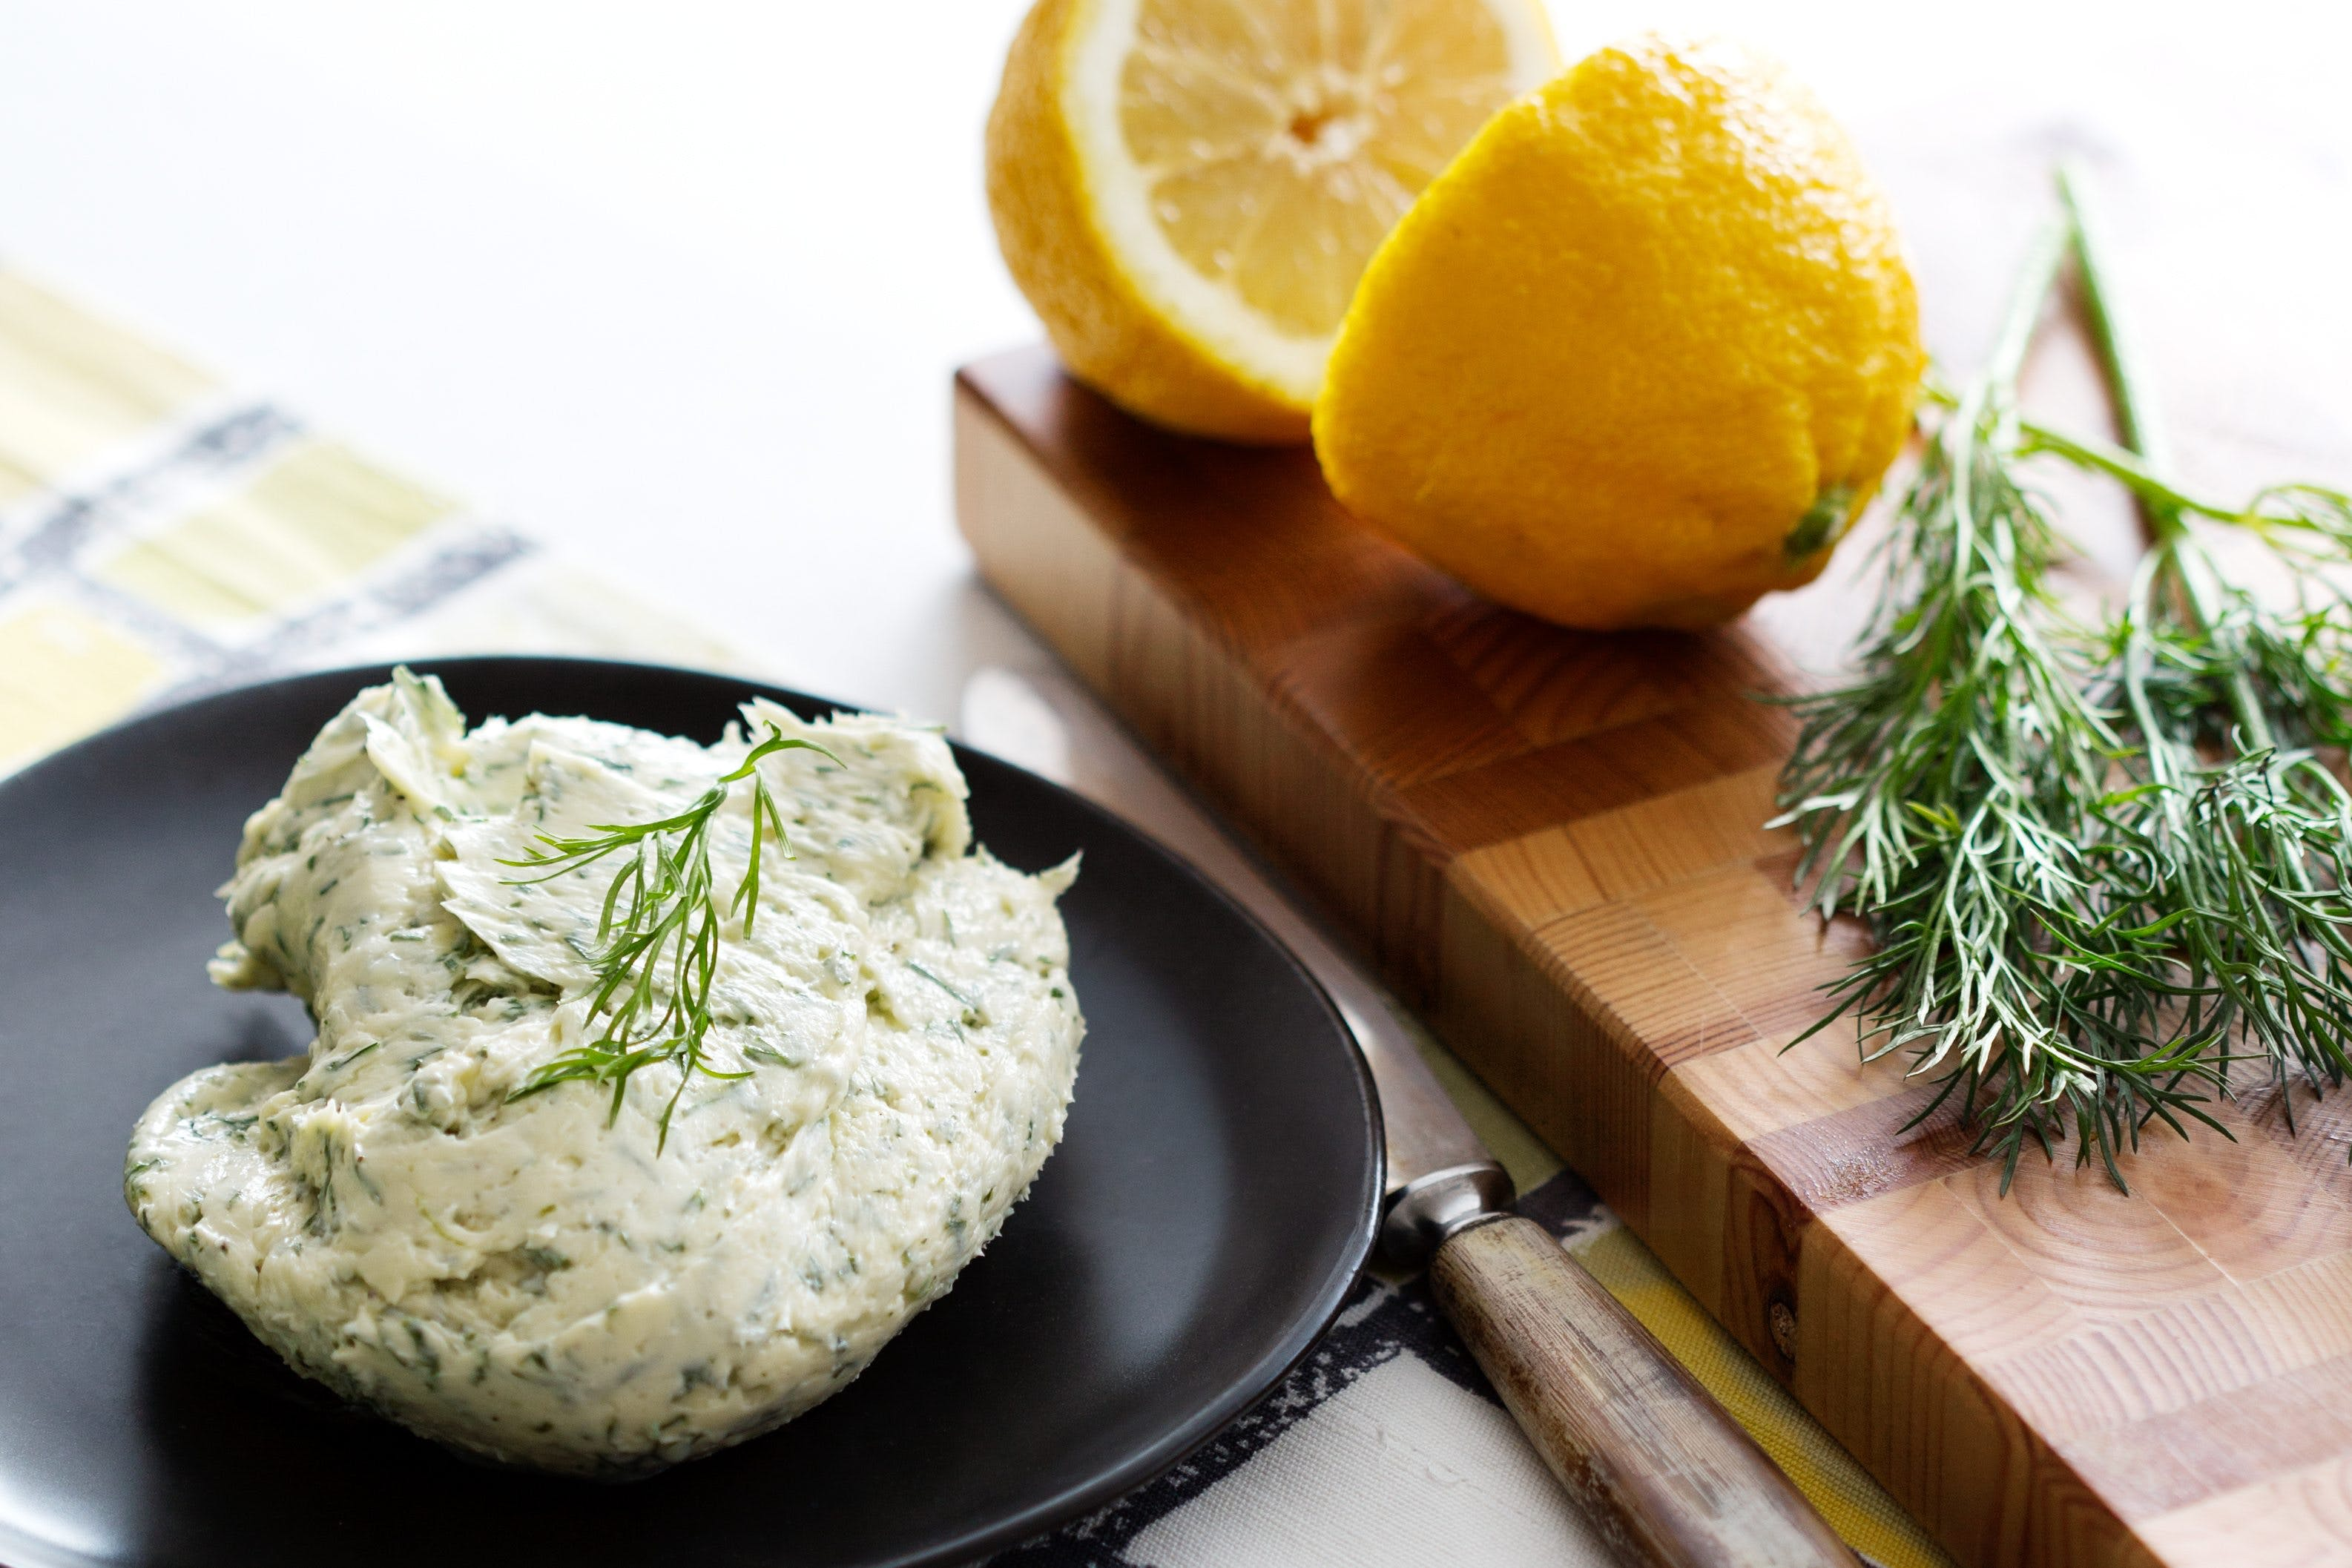 Lemon and dill butter